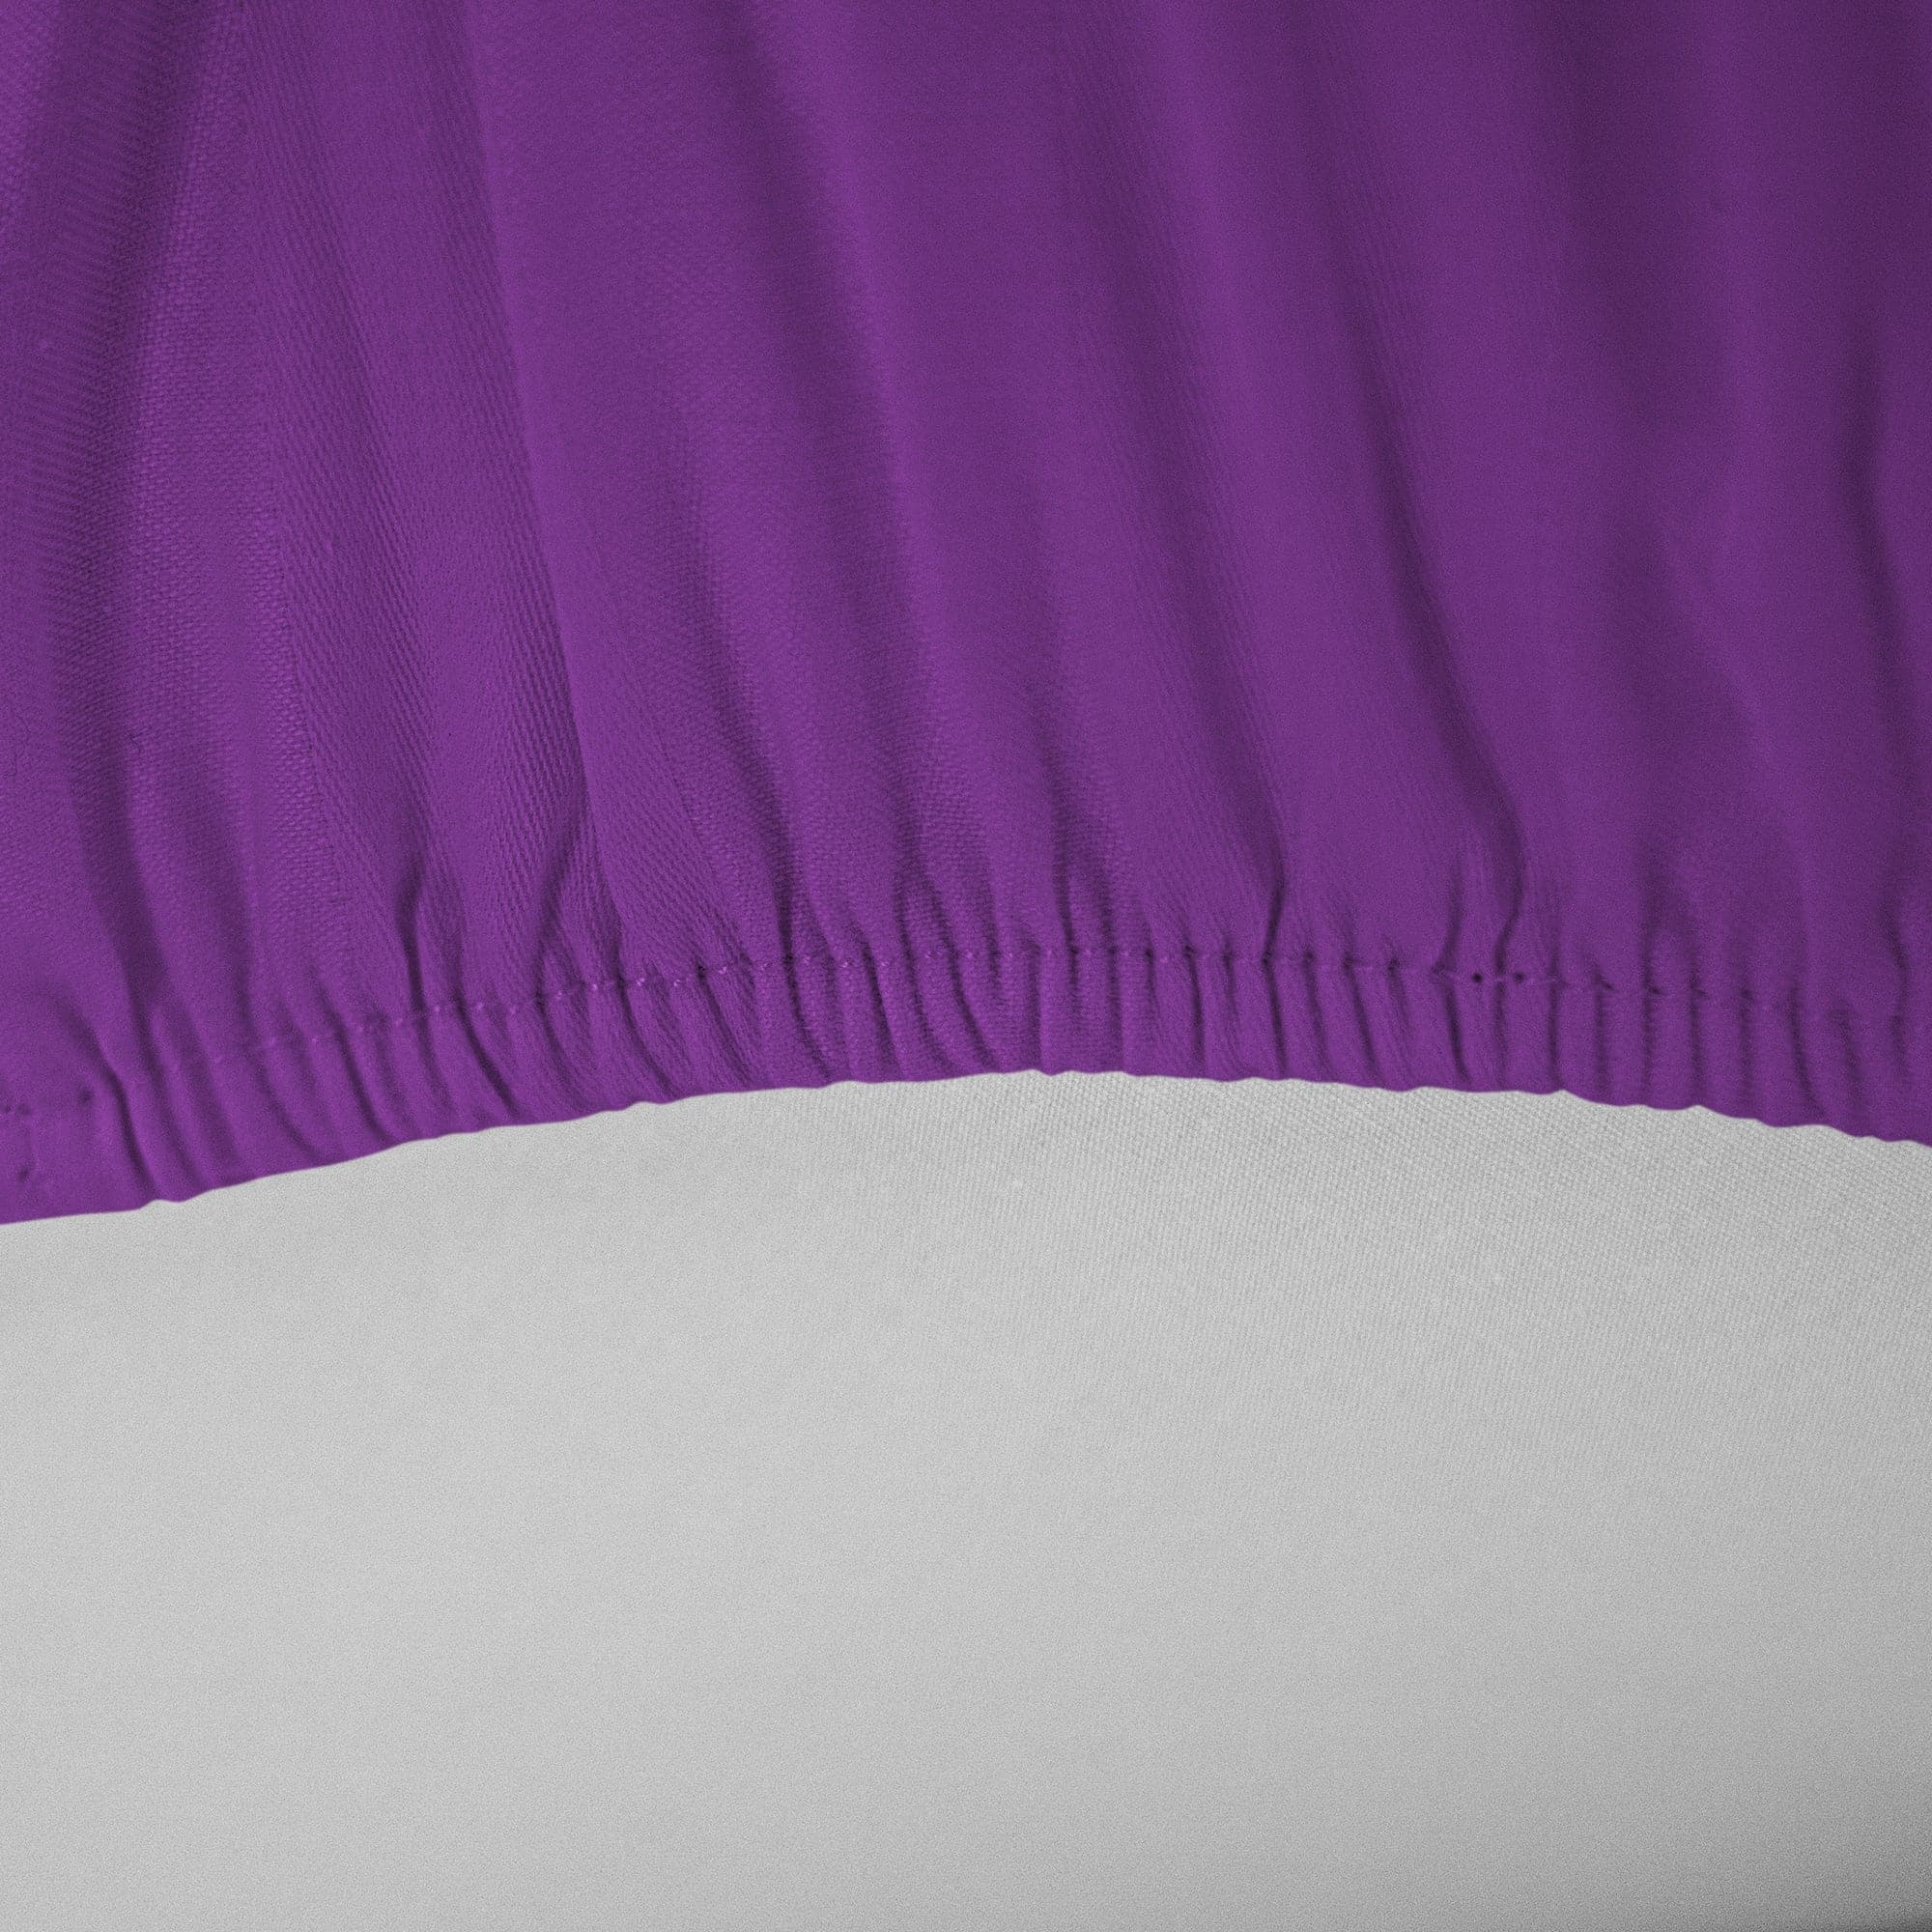 6 Pieces 3CM Hotel Stripes 100% Cotton Sateen Fitted Sheet with Duvet Cover Bedding Set in 300 Thread Counts